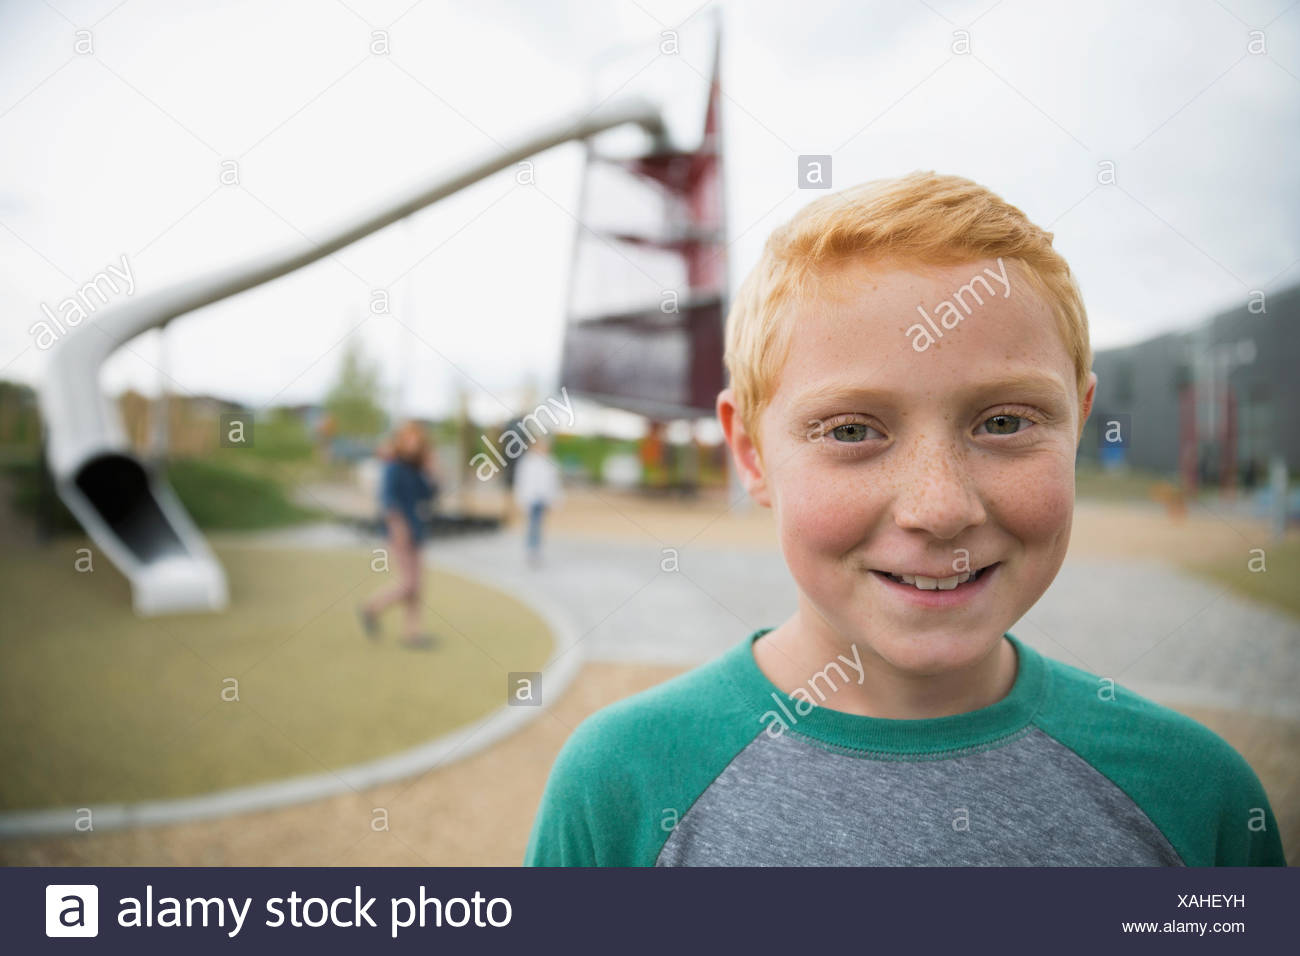 Close up portrait smiling boy red hair playground - Stock Image